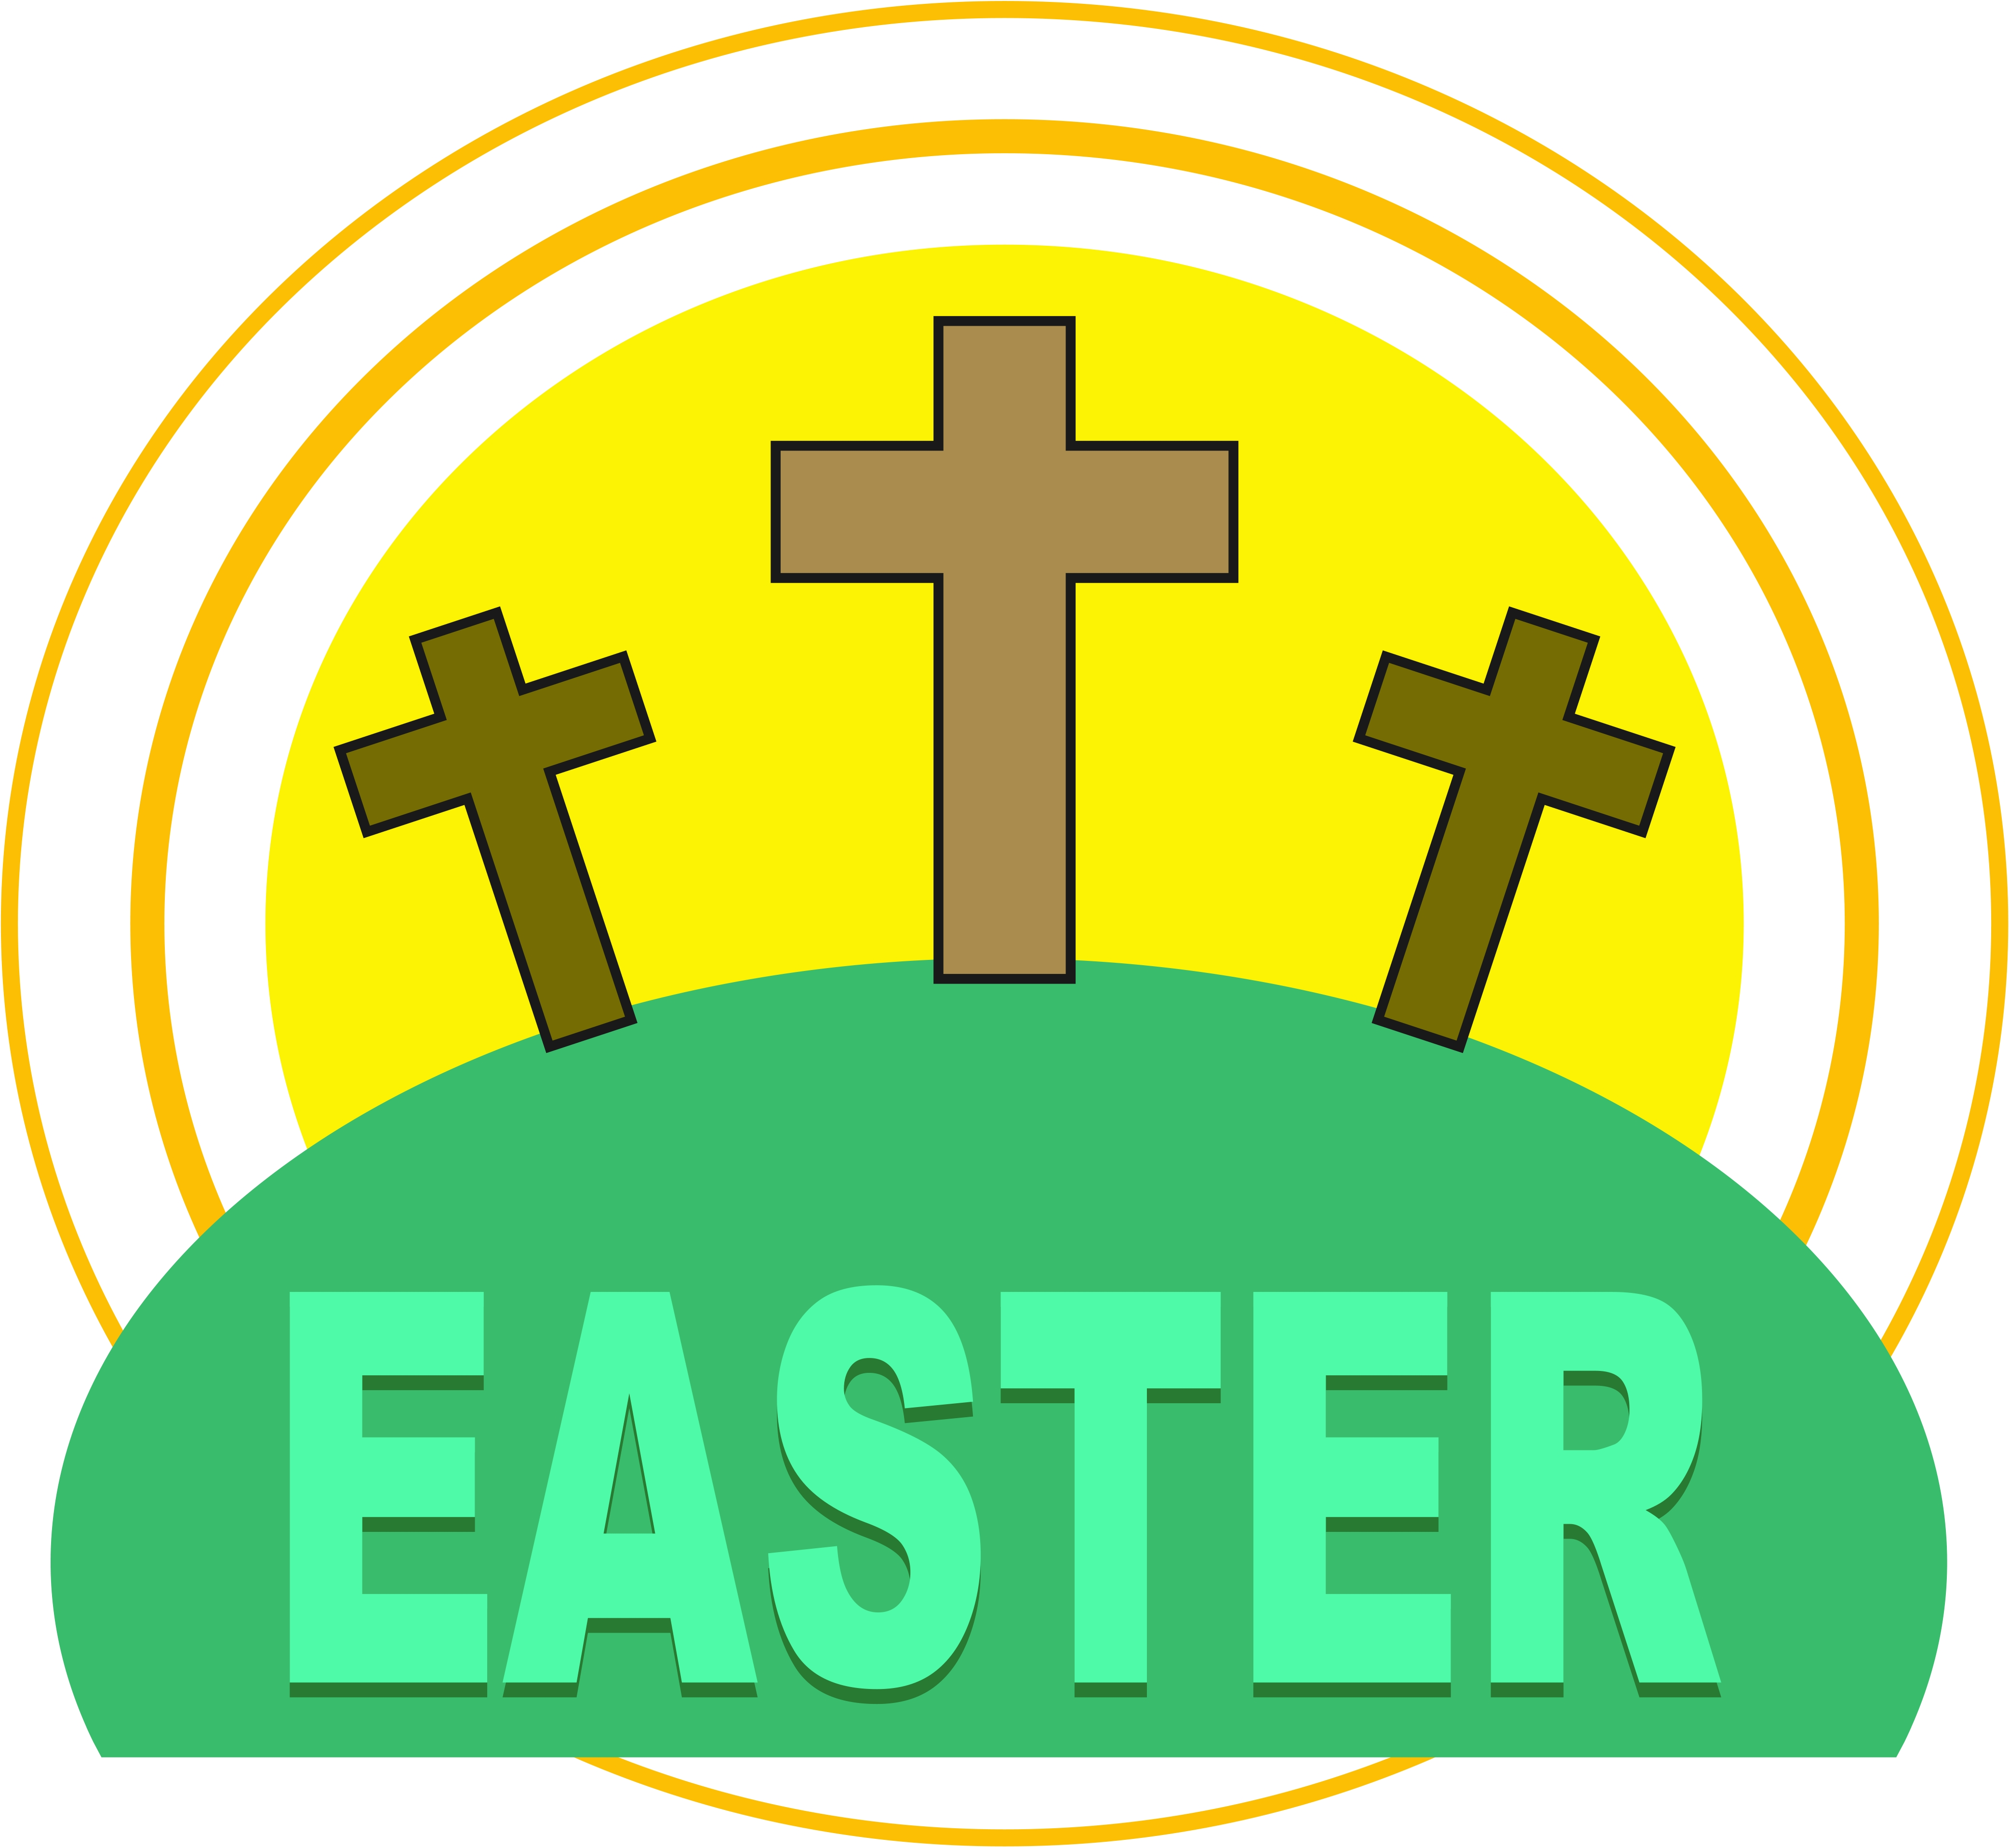 Easter Calvary Free Images At Clker Com Vector Clip Art Online